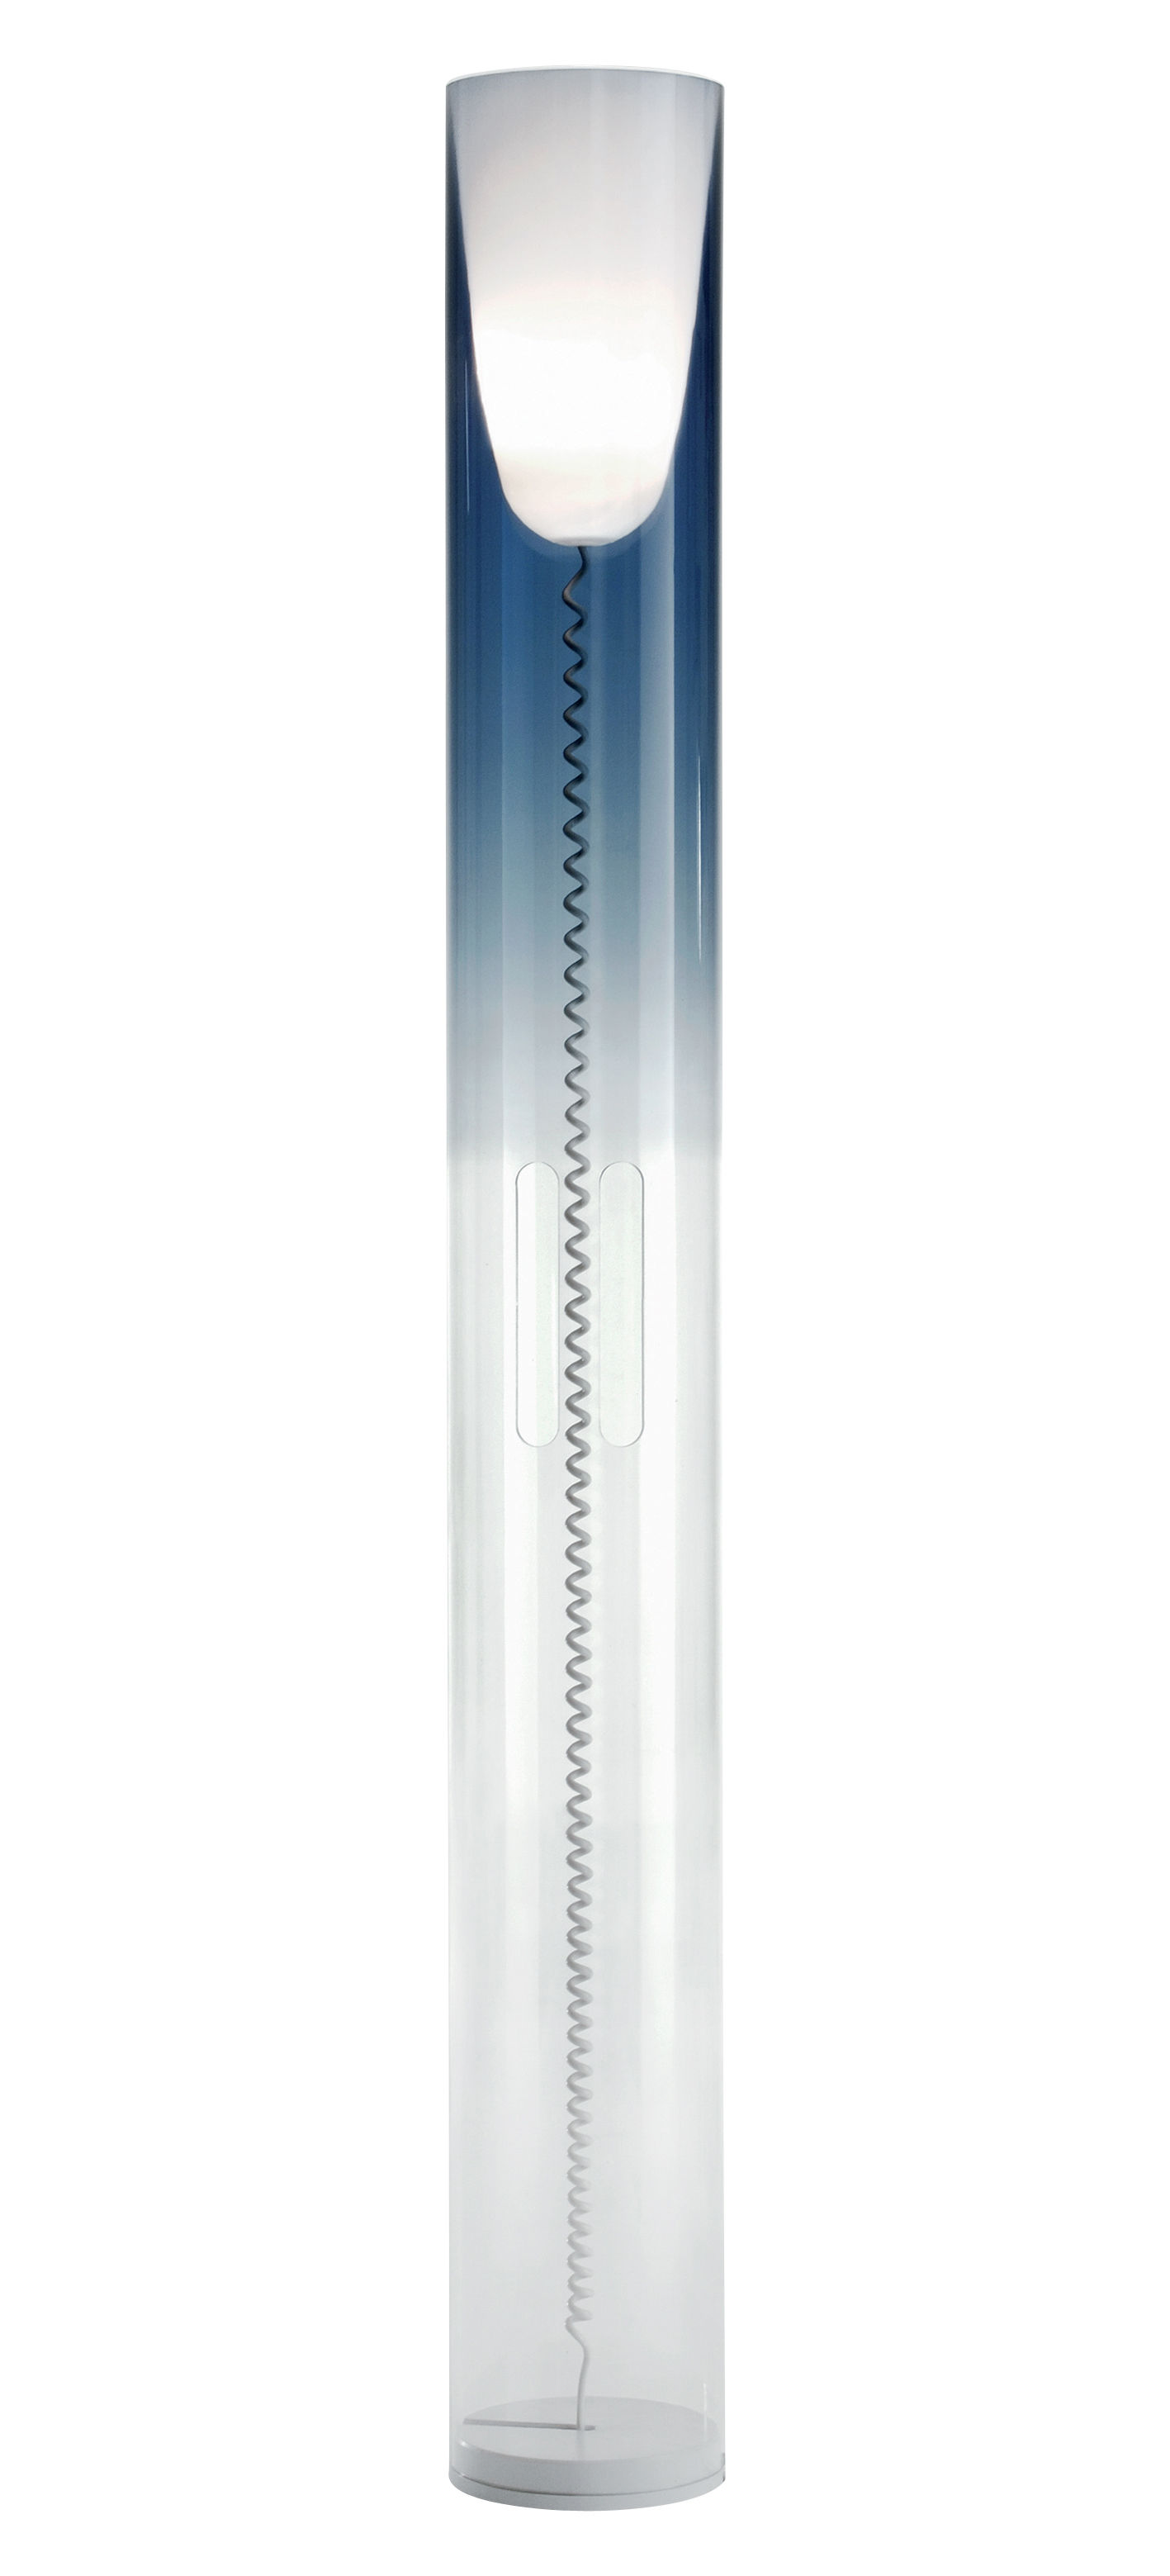 Lighting - Floor lamps - Toobe Floor lamp by Kartell - Blue - PMMA, Polycarbonate